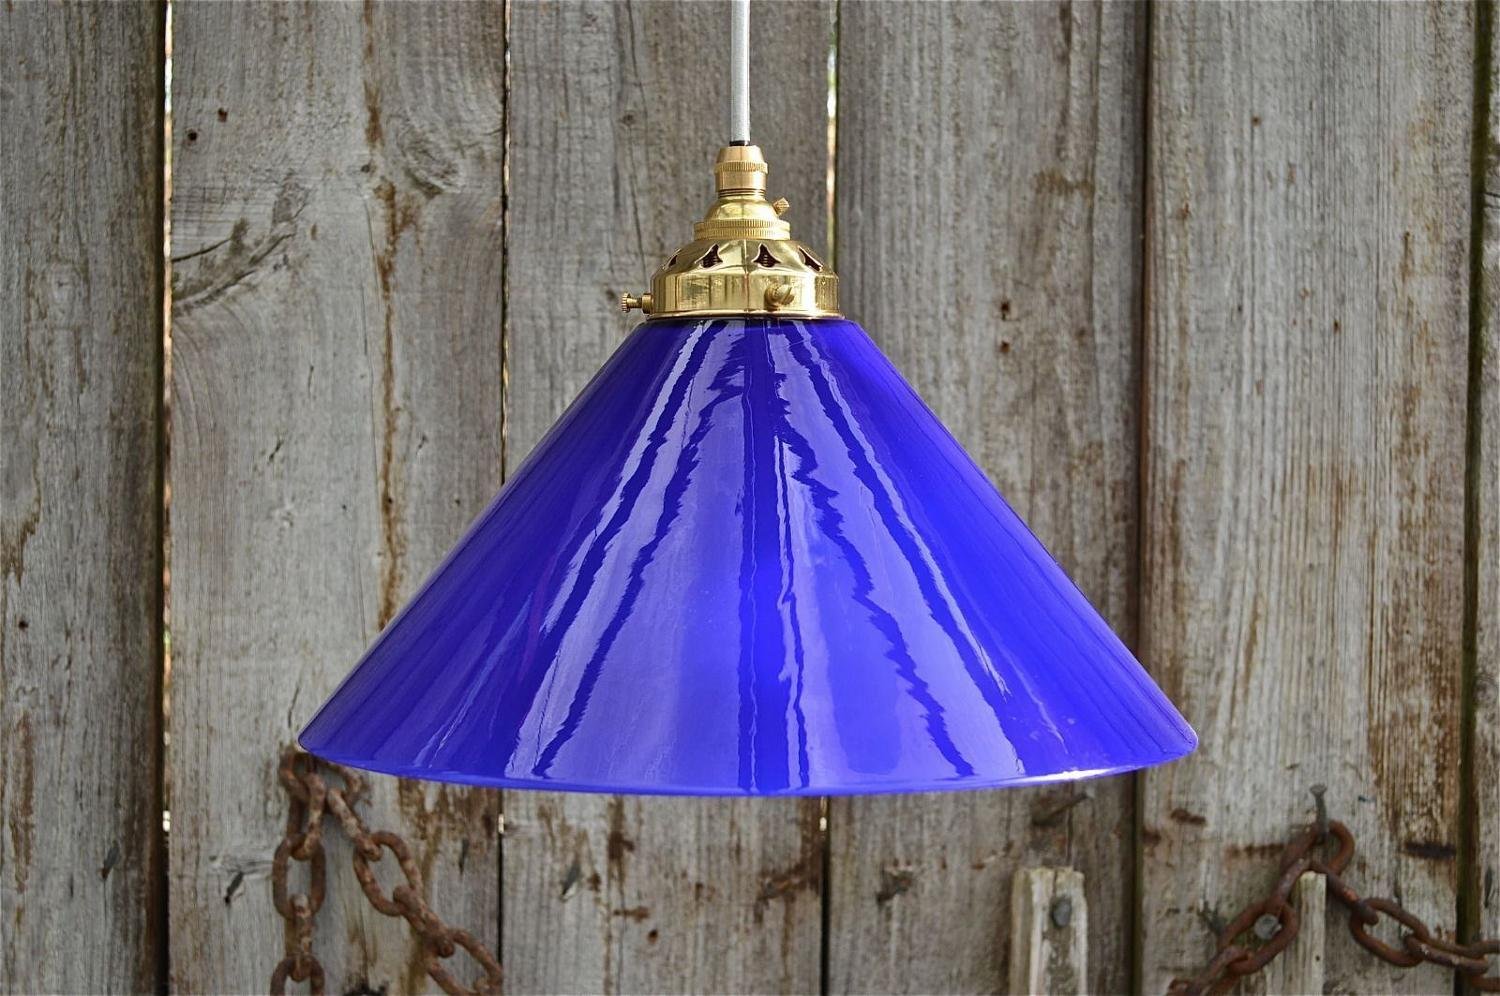 Vintage handmade Italian blue glass cooli pendant light lamp